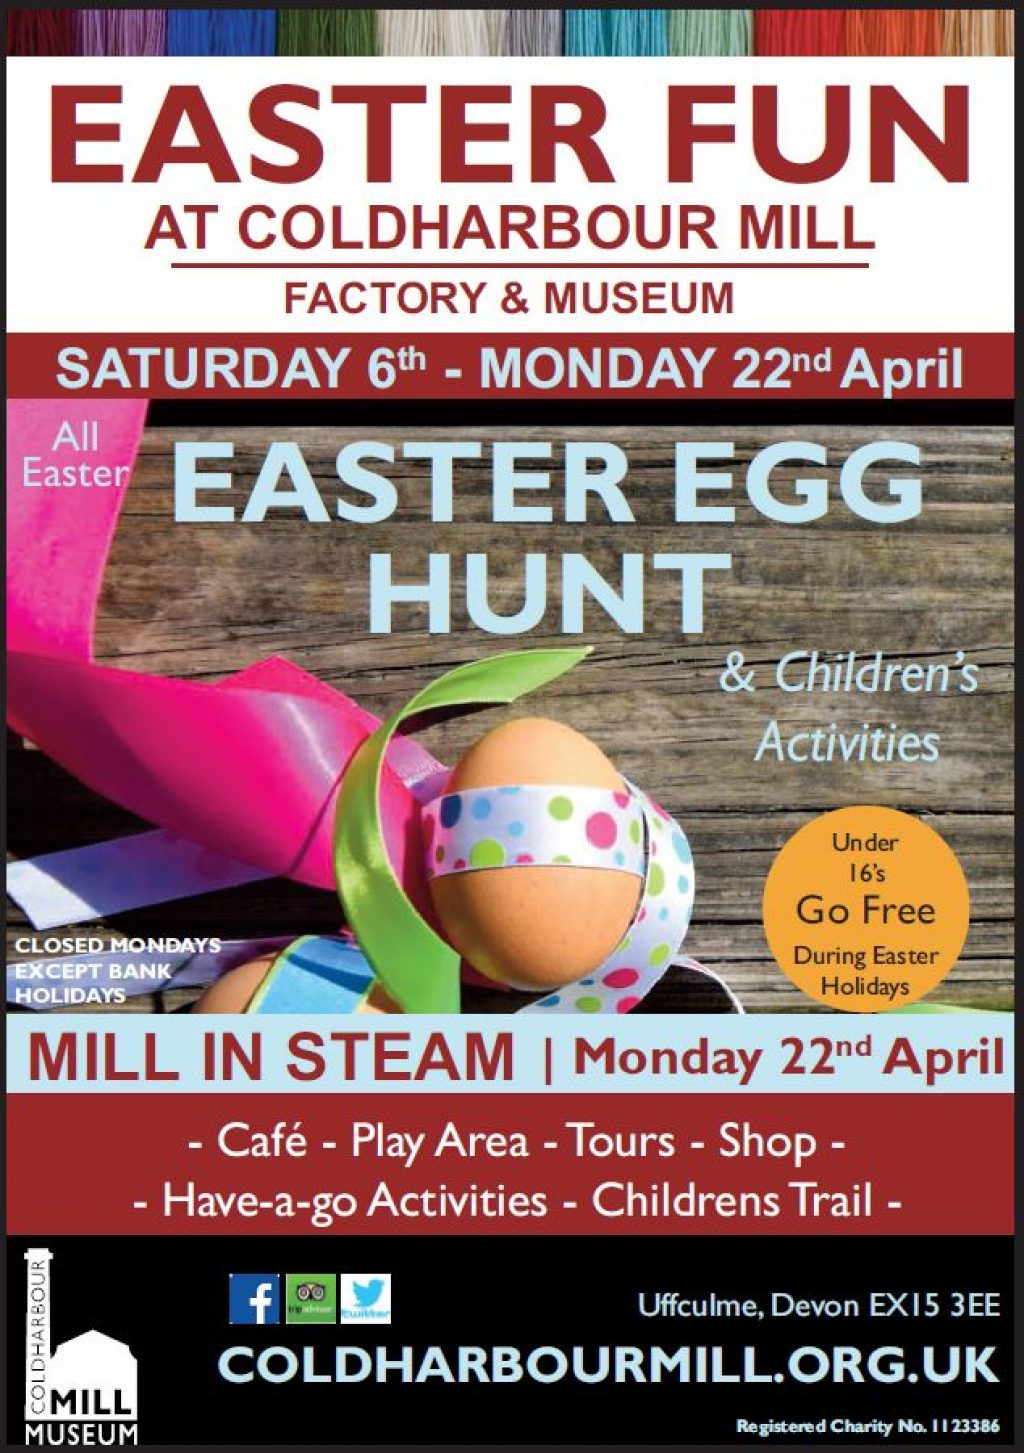 Coldharbour Mill Easter Egg Hunt & Mill in Steam Monday 22 April. Cafe, play area, tours, have-a-go activities, children's trail.